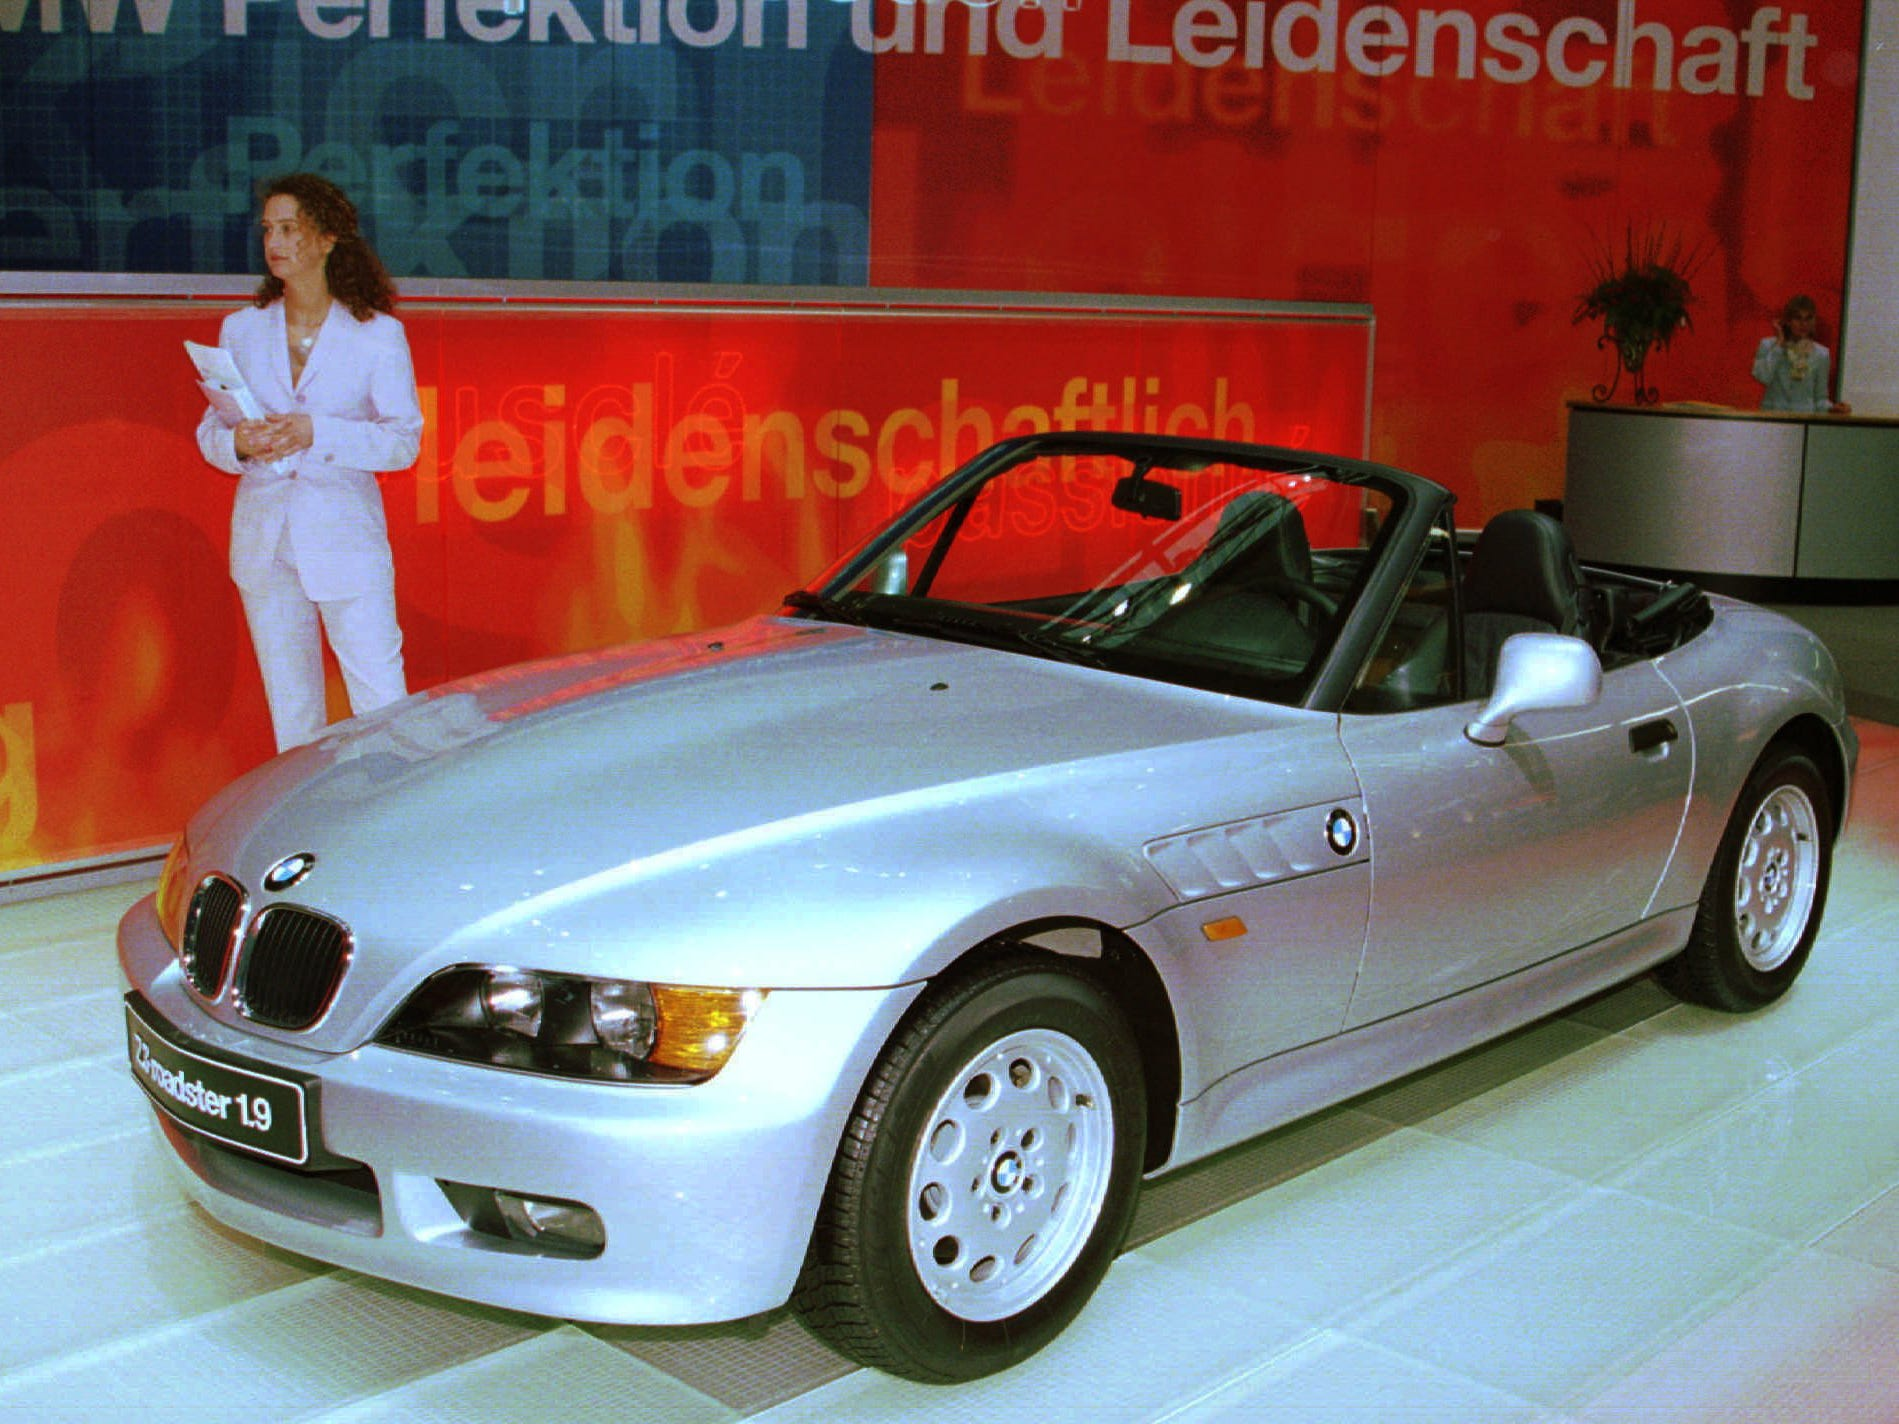 An independant jury, composed of motor journalists and design experts, elected as Cabriolet or Roadster of the Year for 1996 the ''BMW Z3 Roadster'' during the press preview day at the 66th Geneva Motor Show, Switzerland, Tuesday March 5, 1996. (AP Photo/Donald Stampfli. ORG XMIT: GEV106 [Via MerlinFTP Drop]